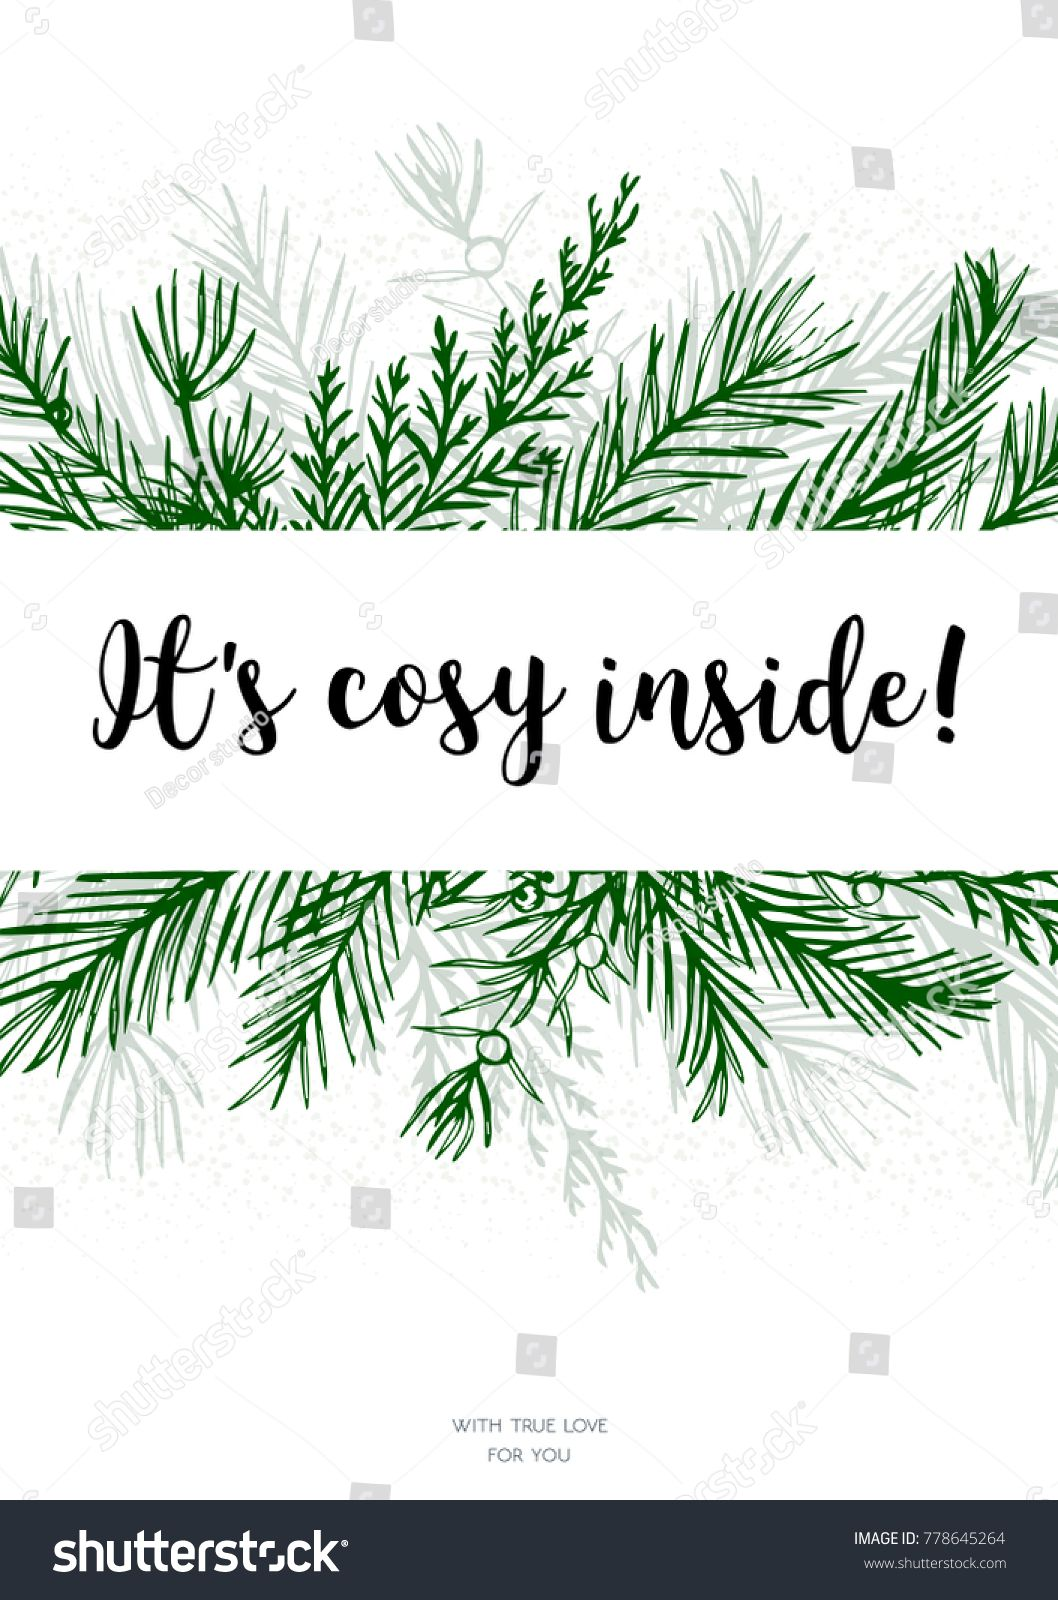 merry christmas new year greeting card postcard vector design hand drawn green greenery winter